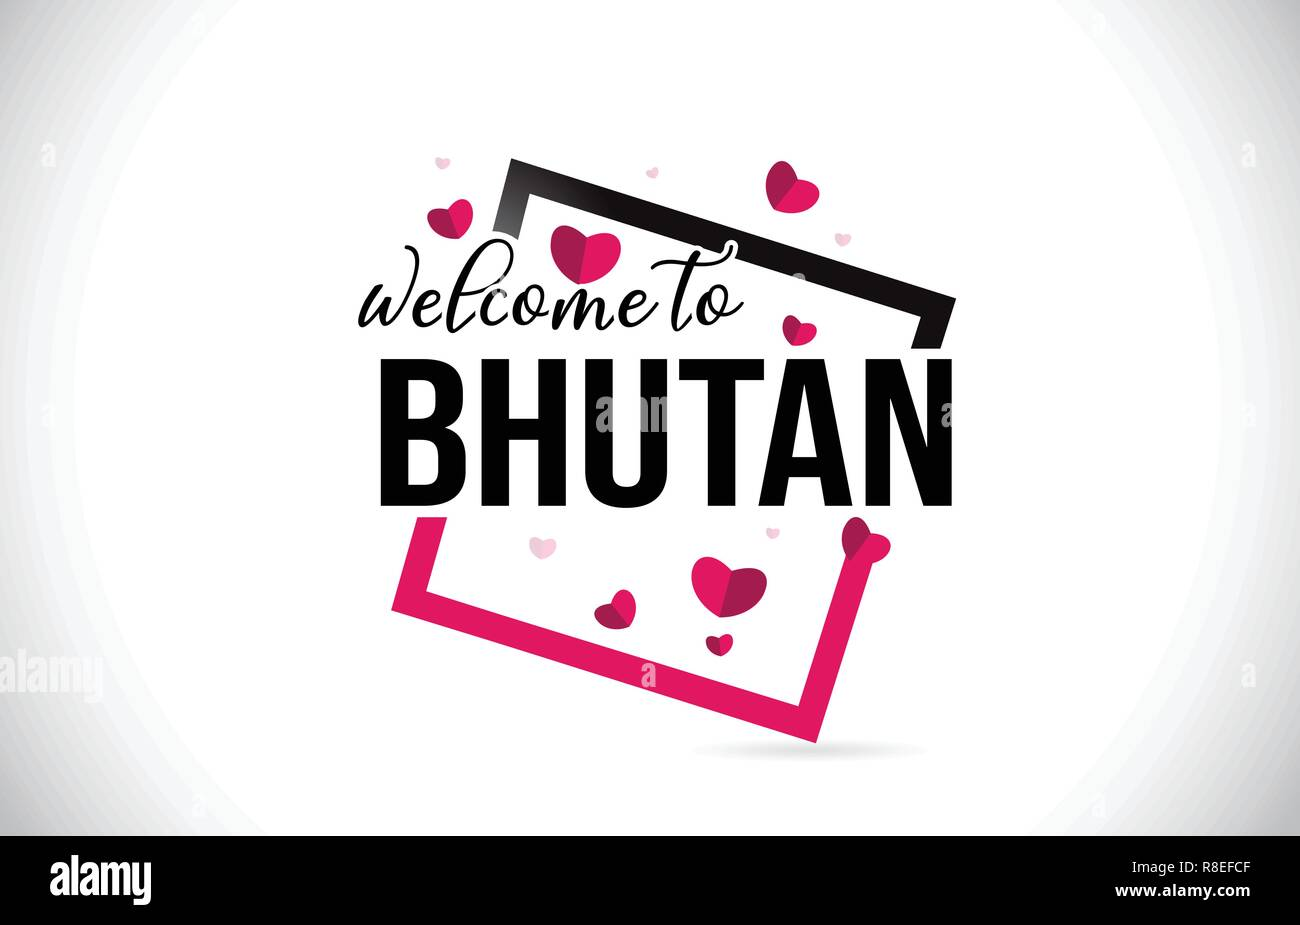 Bhutan Welcome To Word Text with Handwritten Font and  Red Hearts Square Design Illustration Vector. - Stock Vector